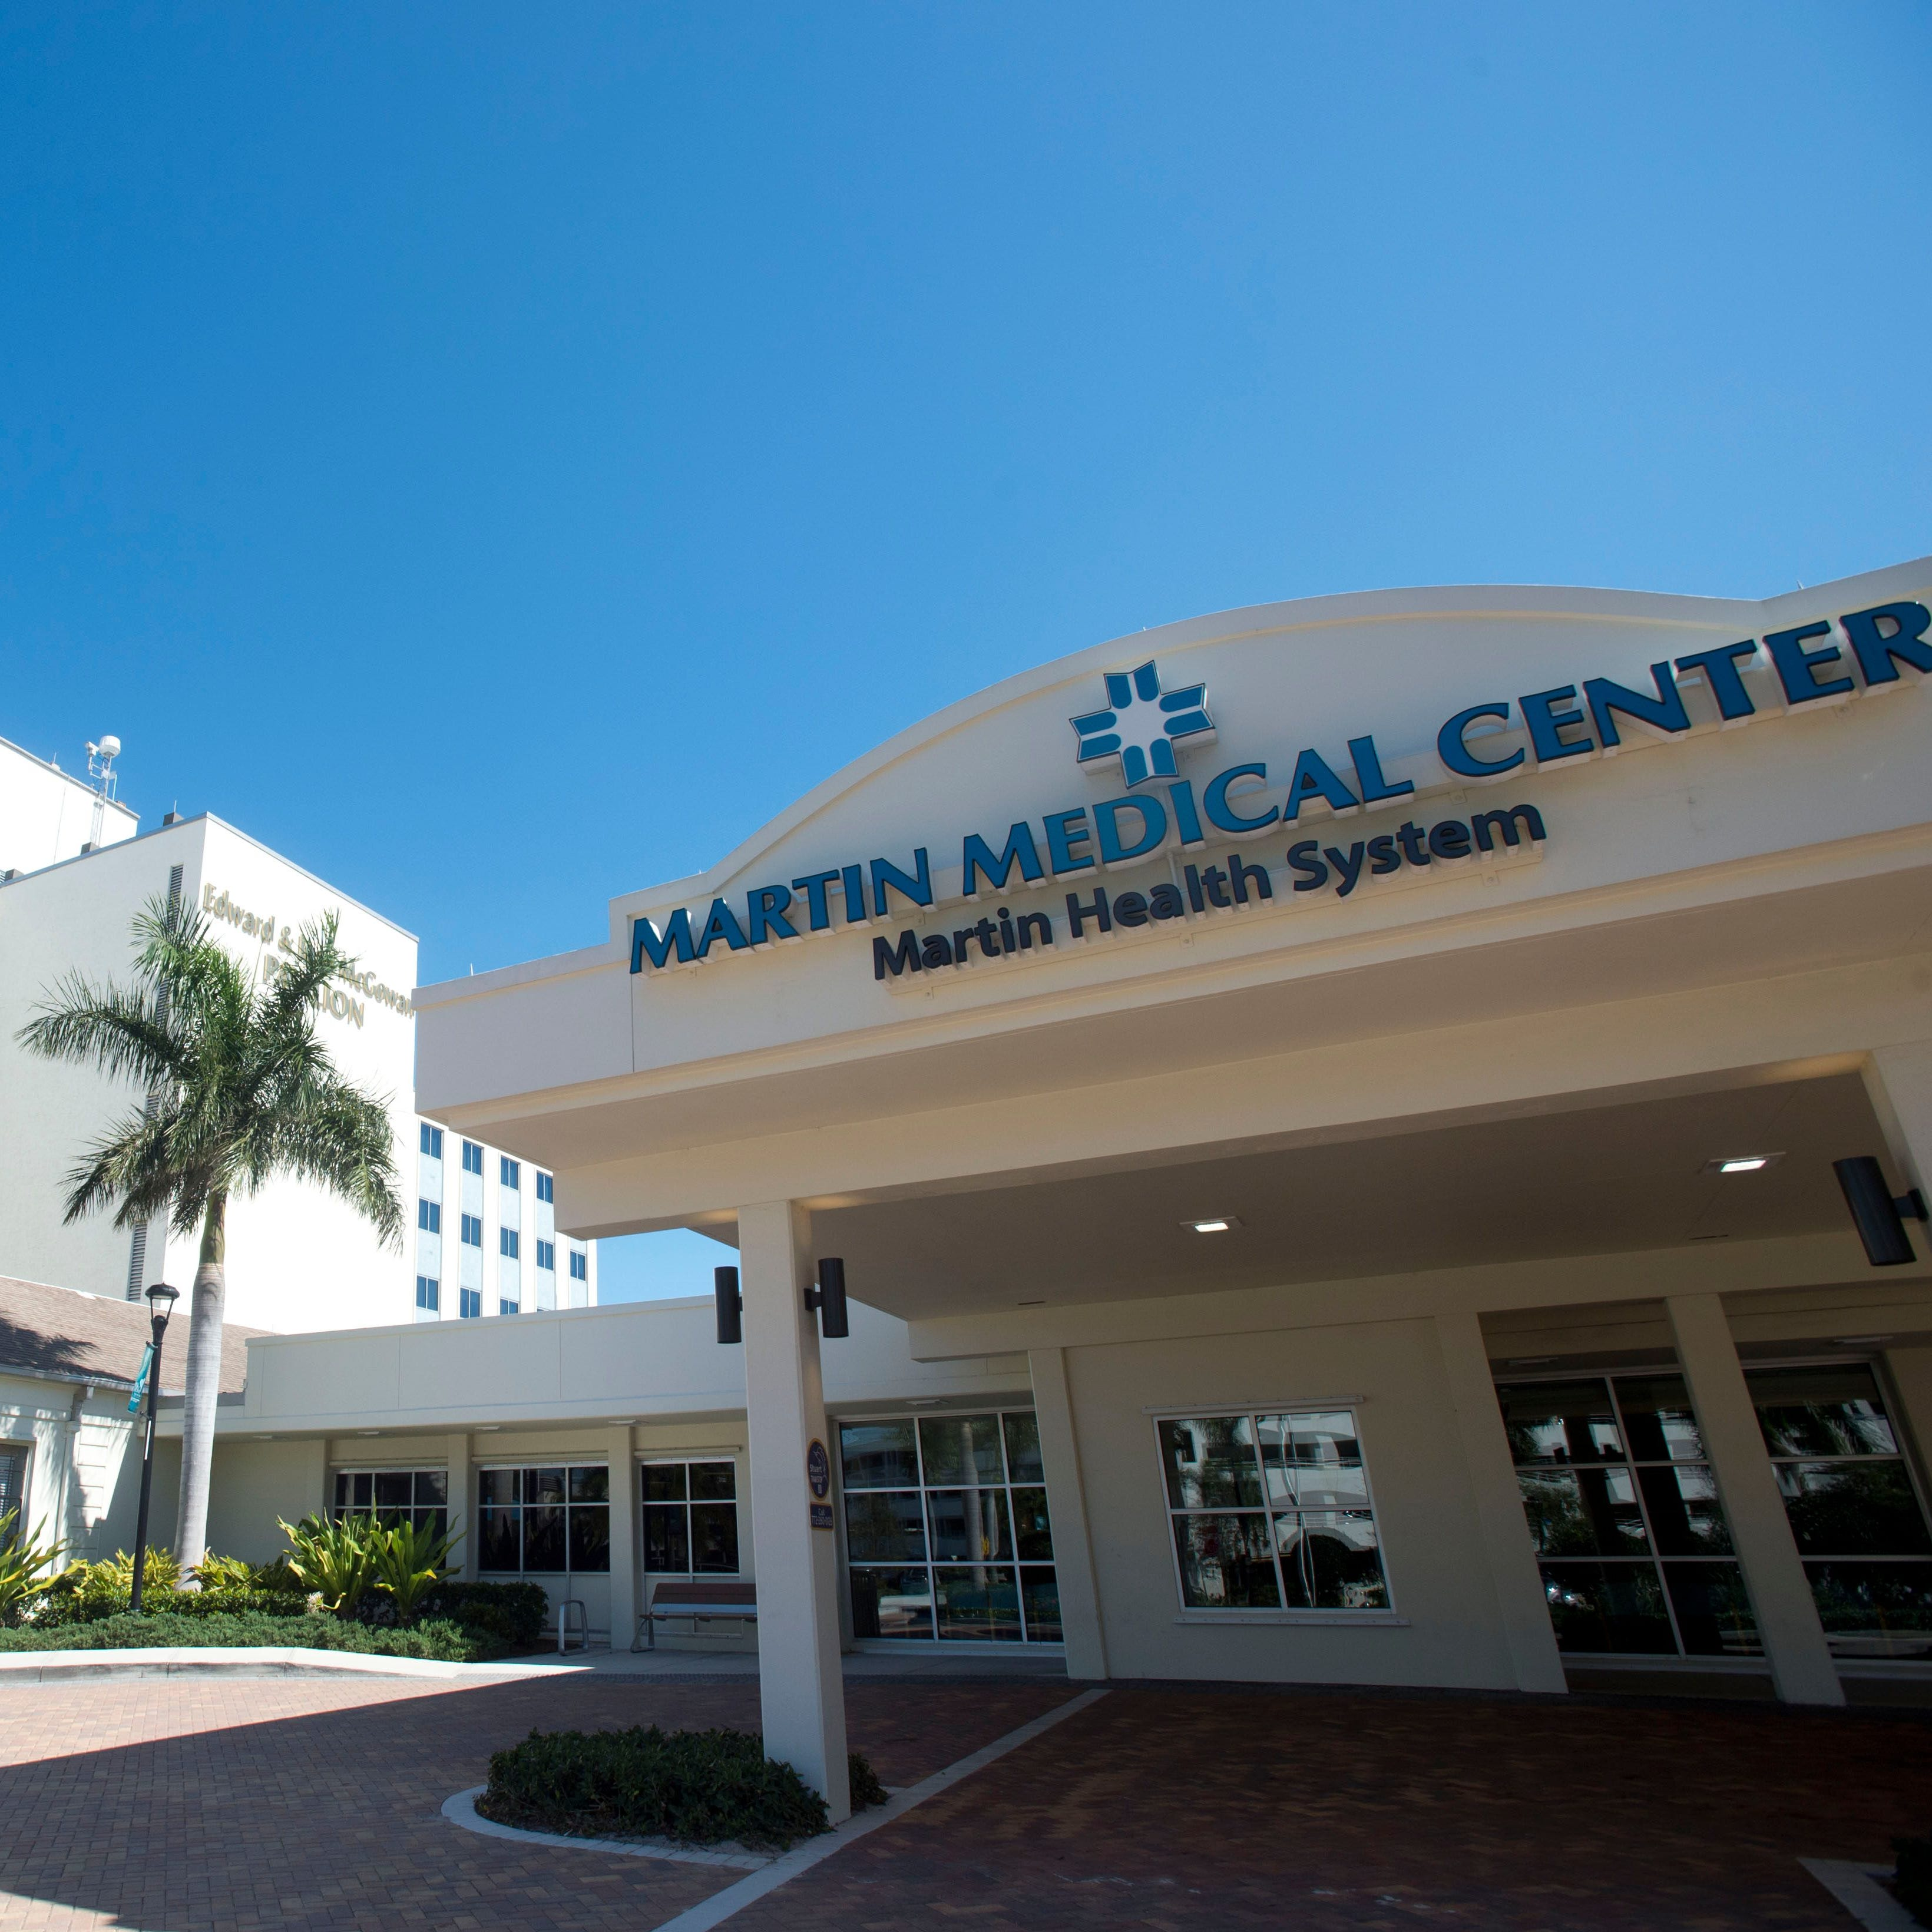 Deadly deliveries: Maternal complications at Martin Medical Center double national median